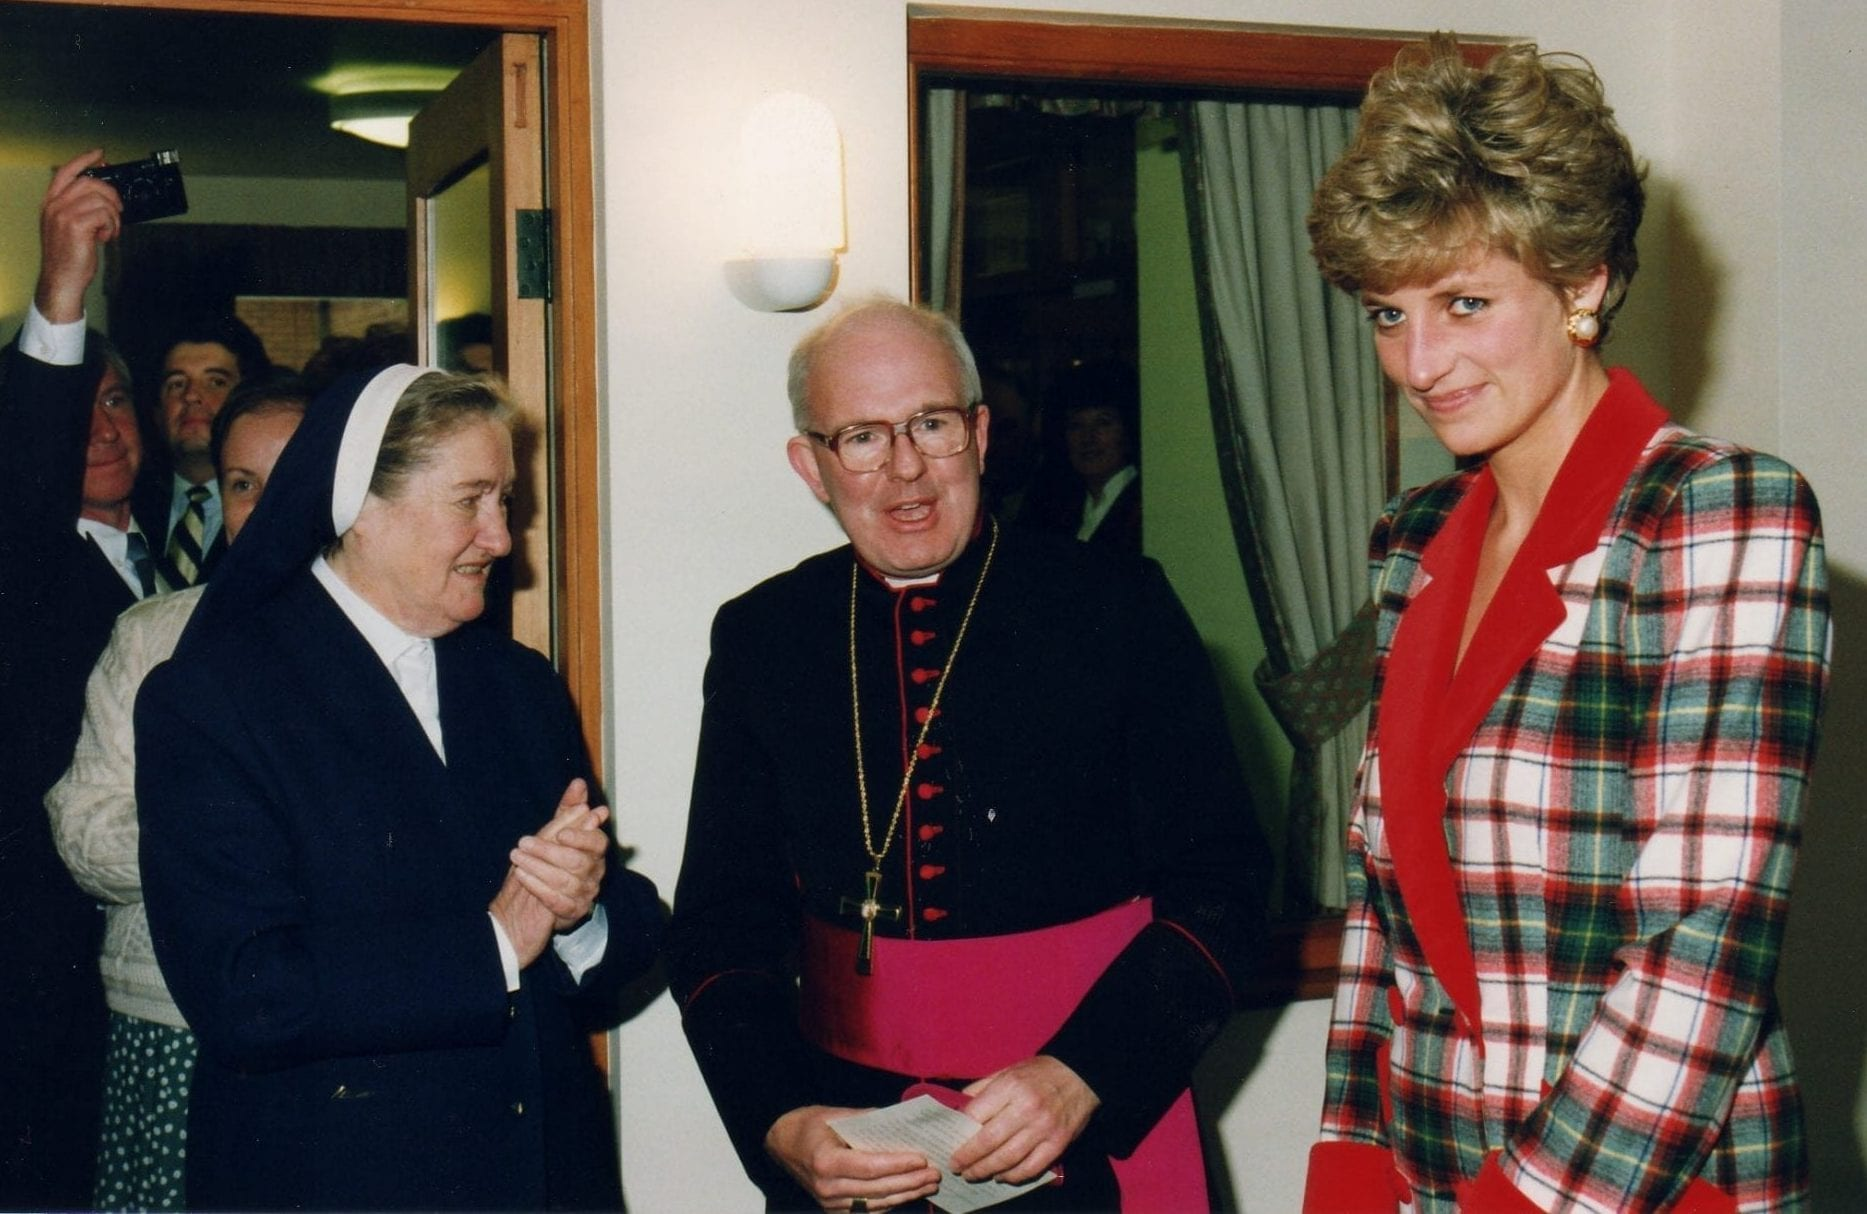 Sister Aloysius Archbishop and Princess Diana